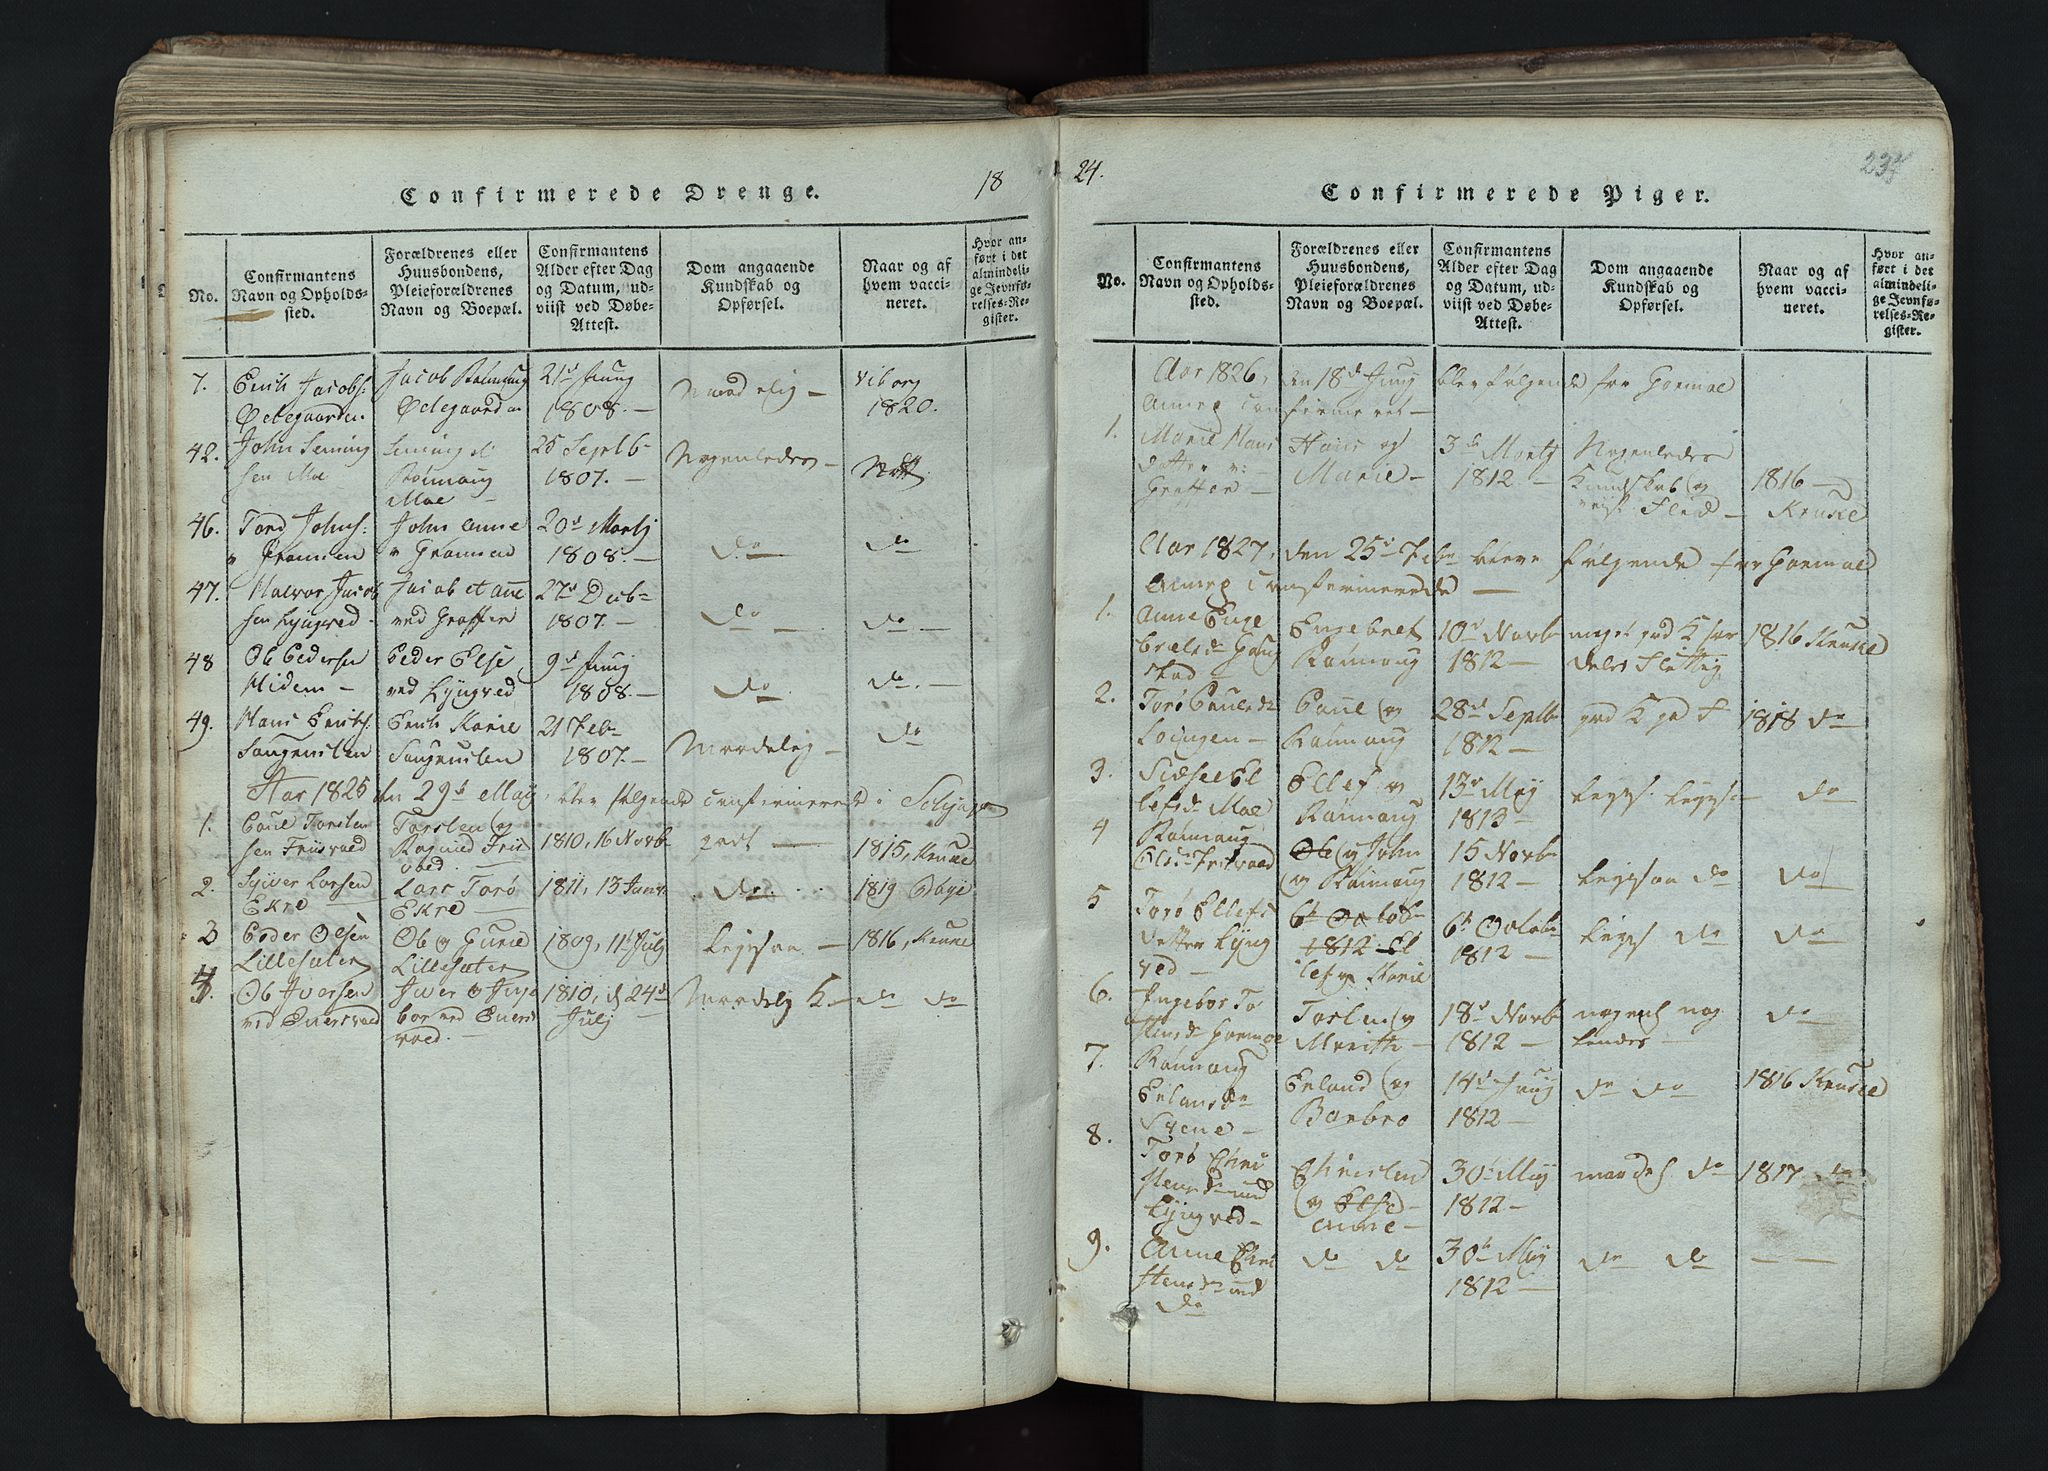 SAH, Lom prestekontor, L/L0002: Parish register (copy) no. 2, 1815-1844, p. 237